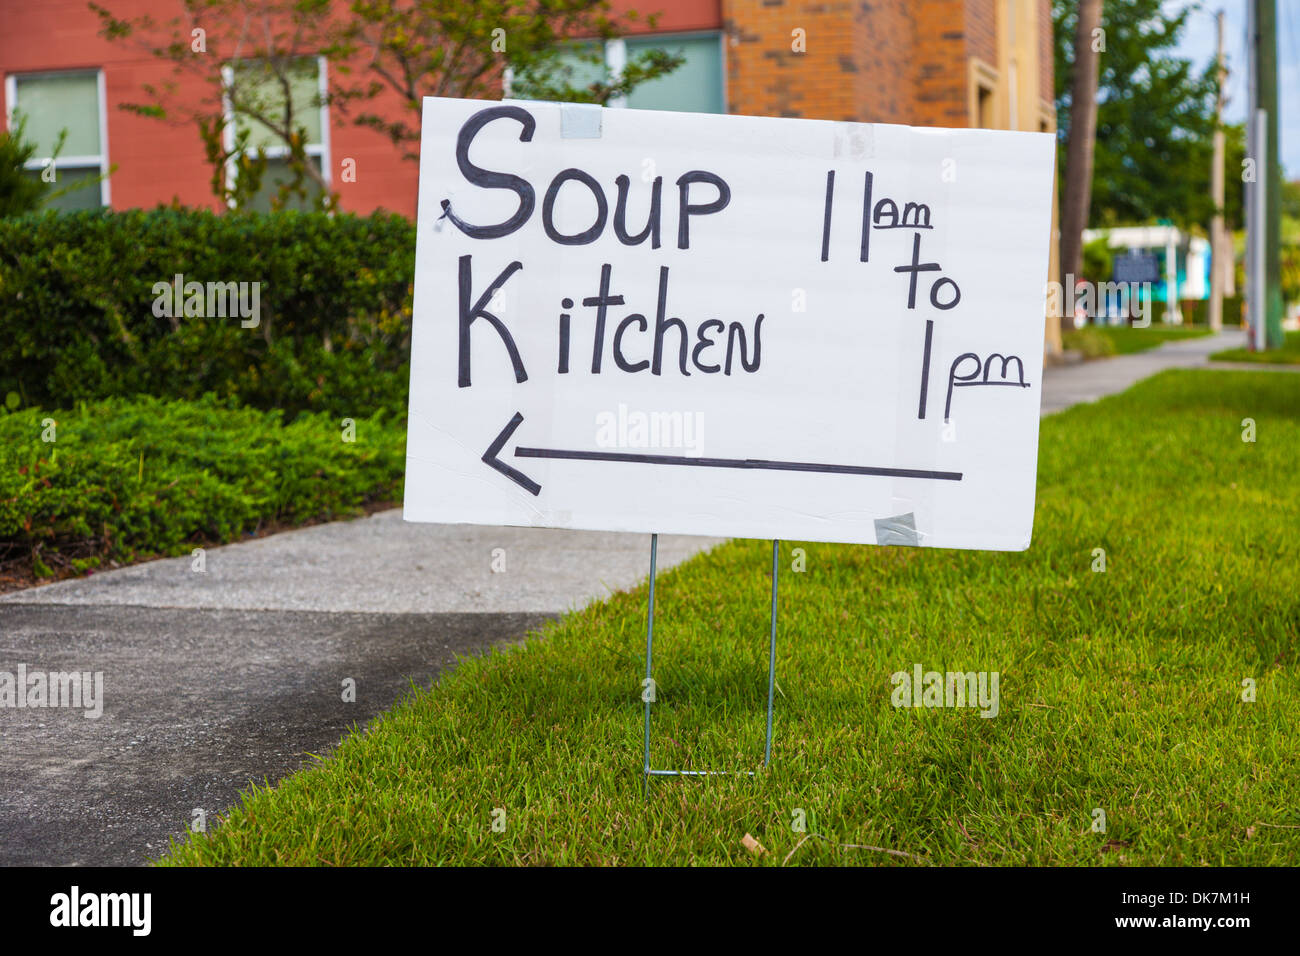 Soup Kitchen In Green Cove Springs Fl